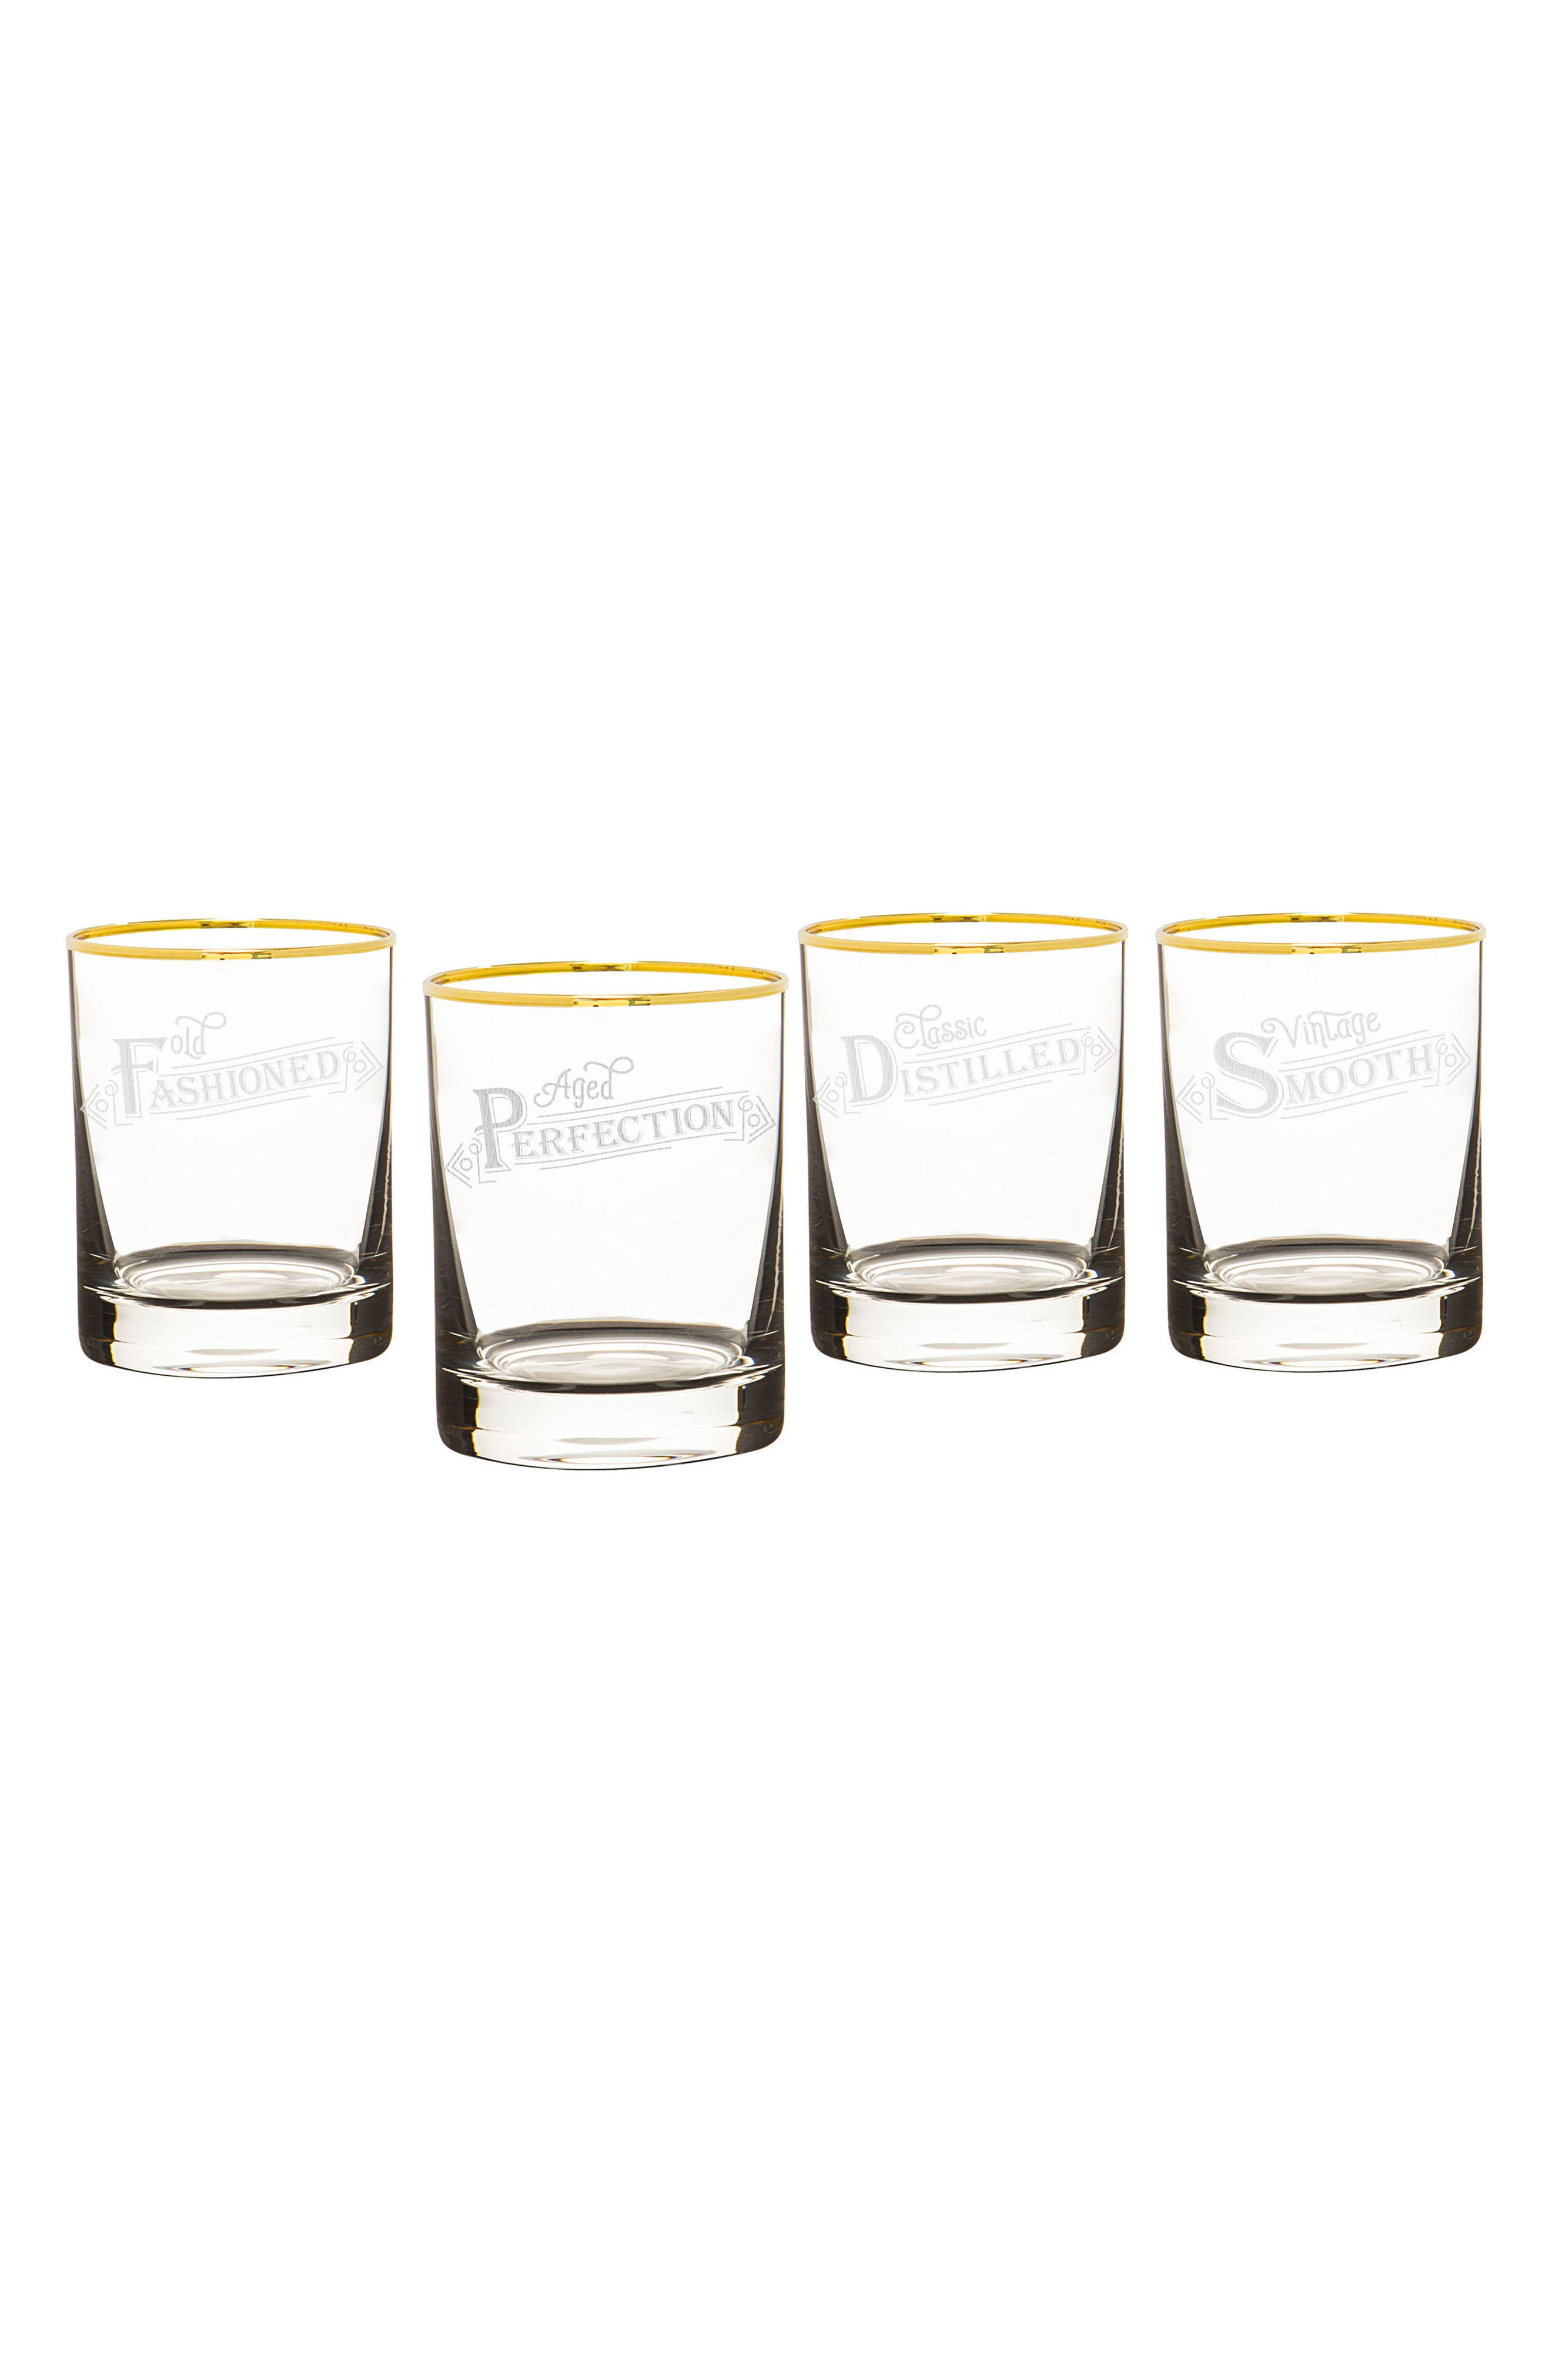 Set of 4 Gold Rim Old Fashioned Whiskey Glasses,                             Main thumbnail 1, color,                             110